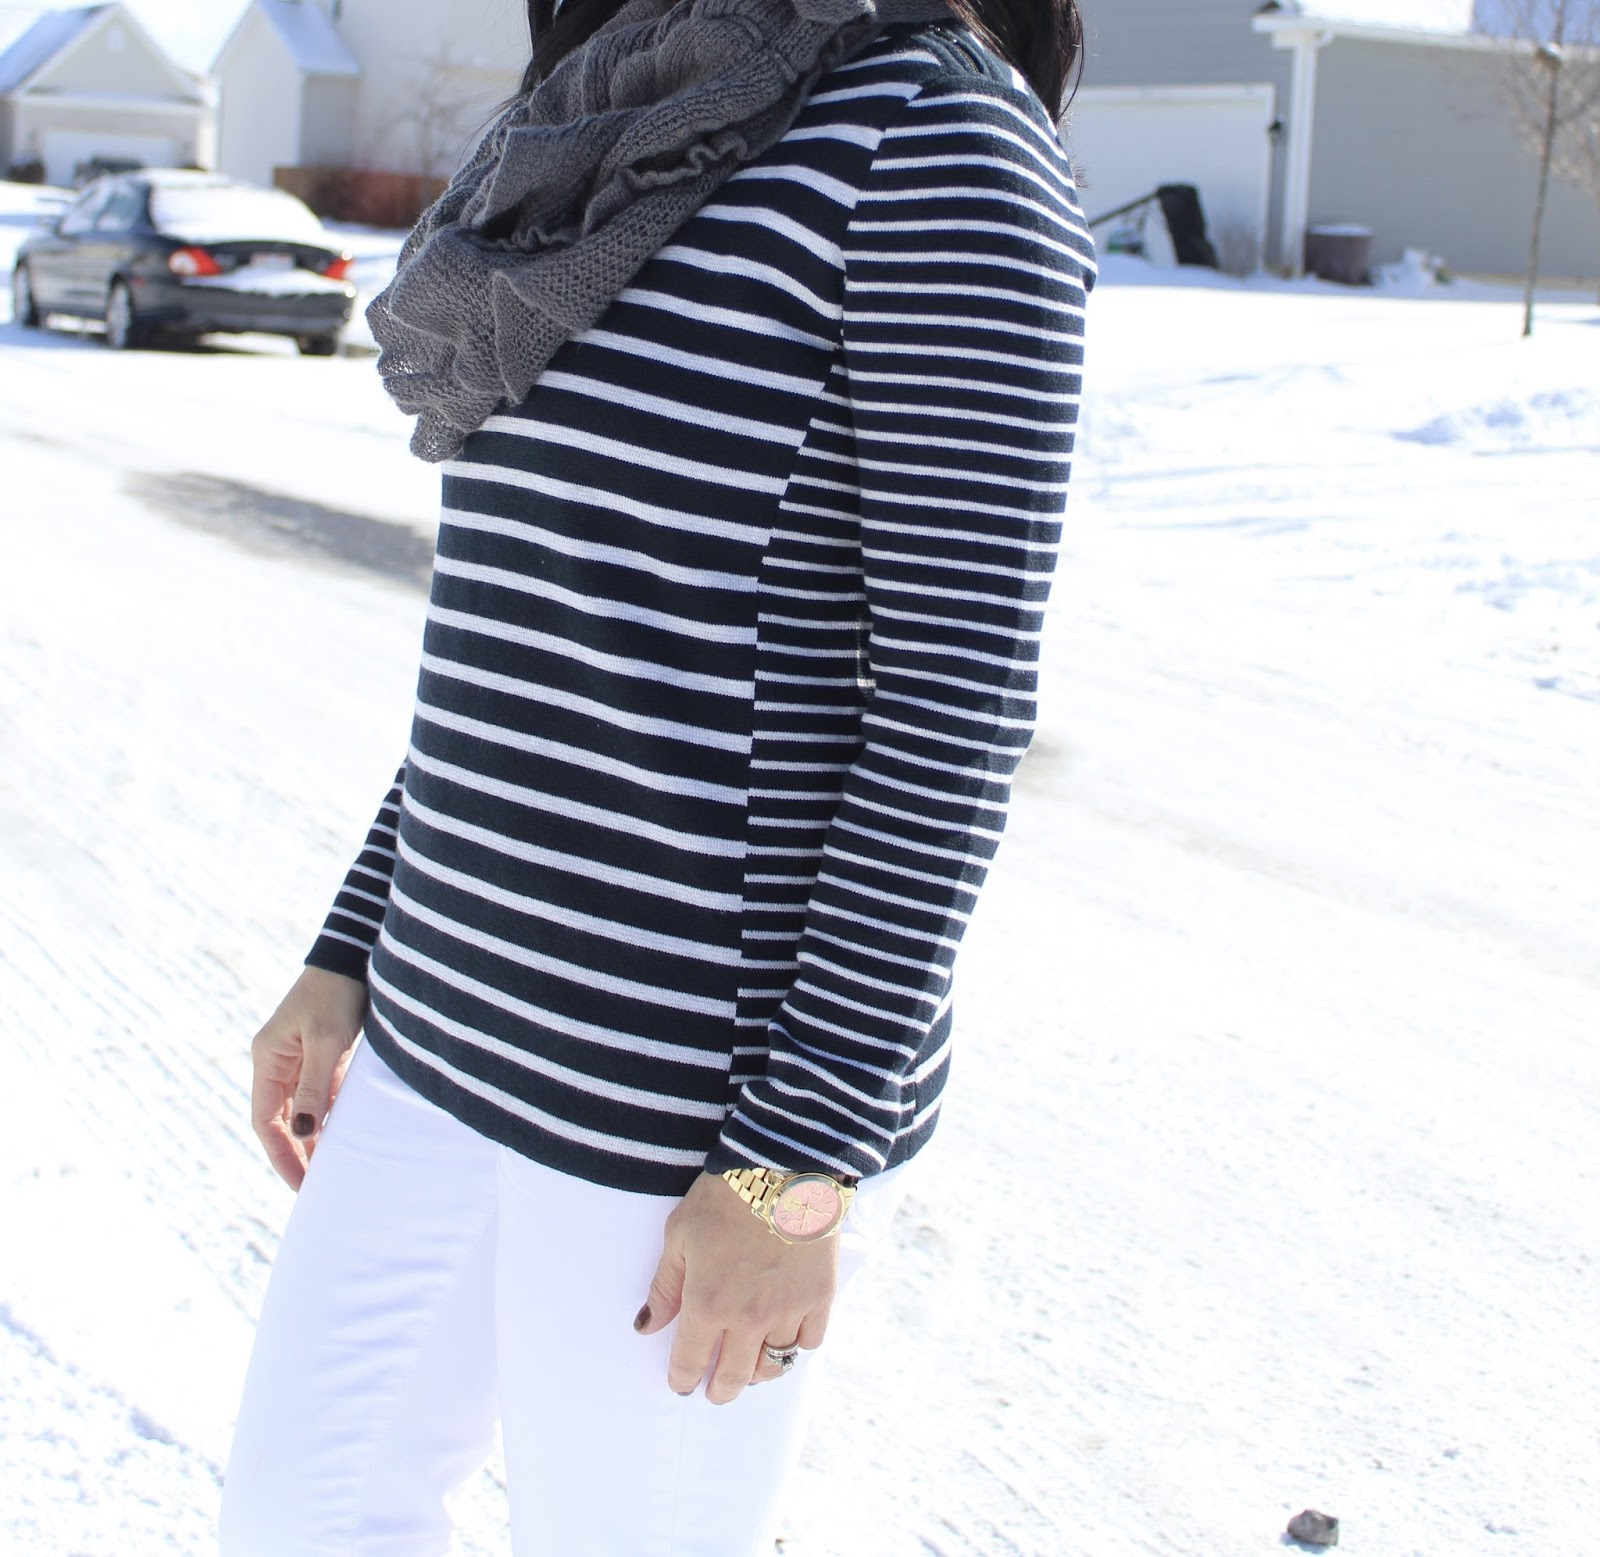 grey and navy striped sweater via J. Jill.